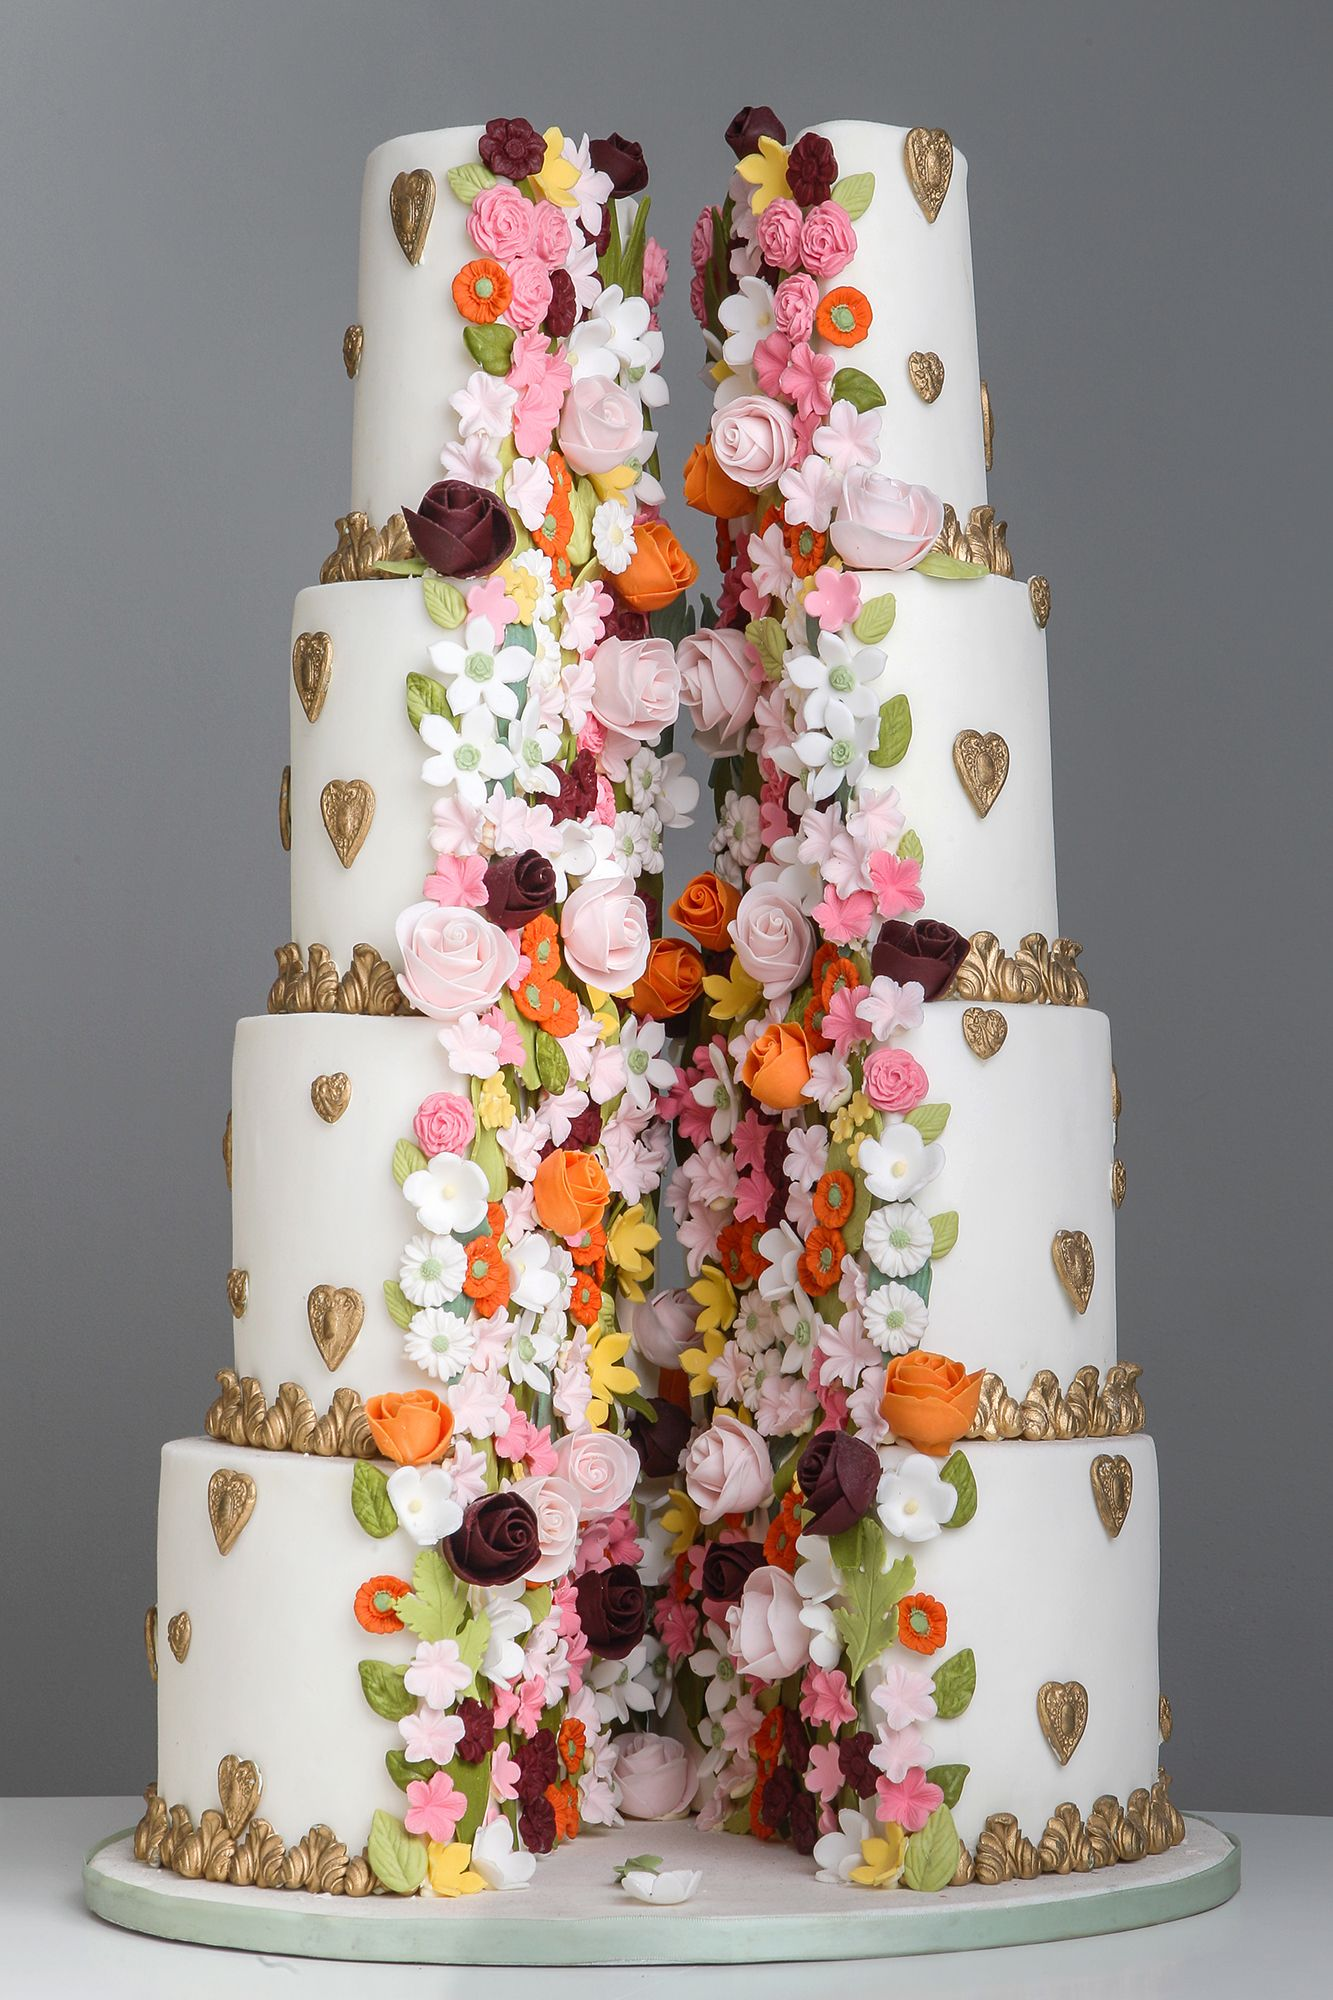 15 elegant fall wedding cakes ideas for fall wedding cake flavors 15 elegant fall wedding cakes ideas for fall wedding cake flavors and design junglespirit